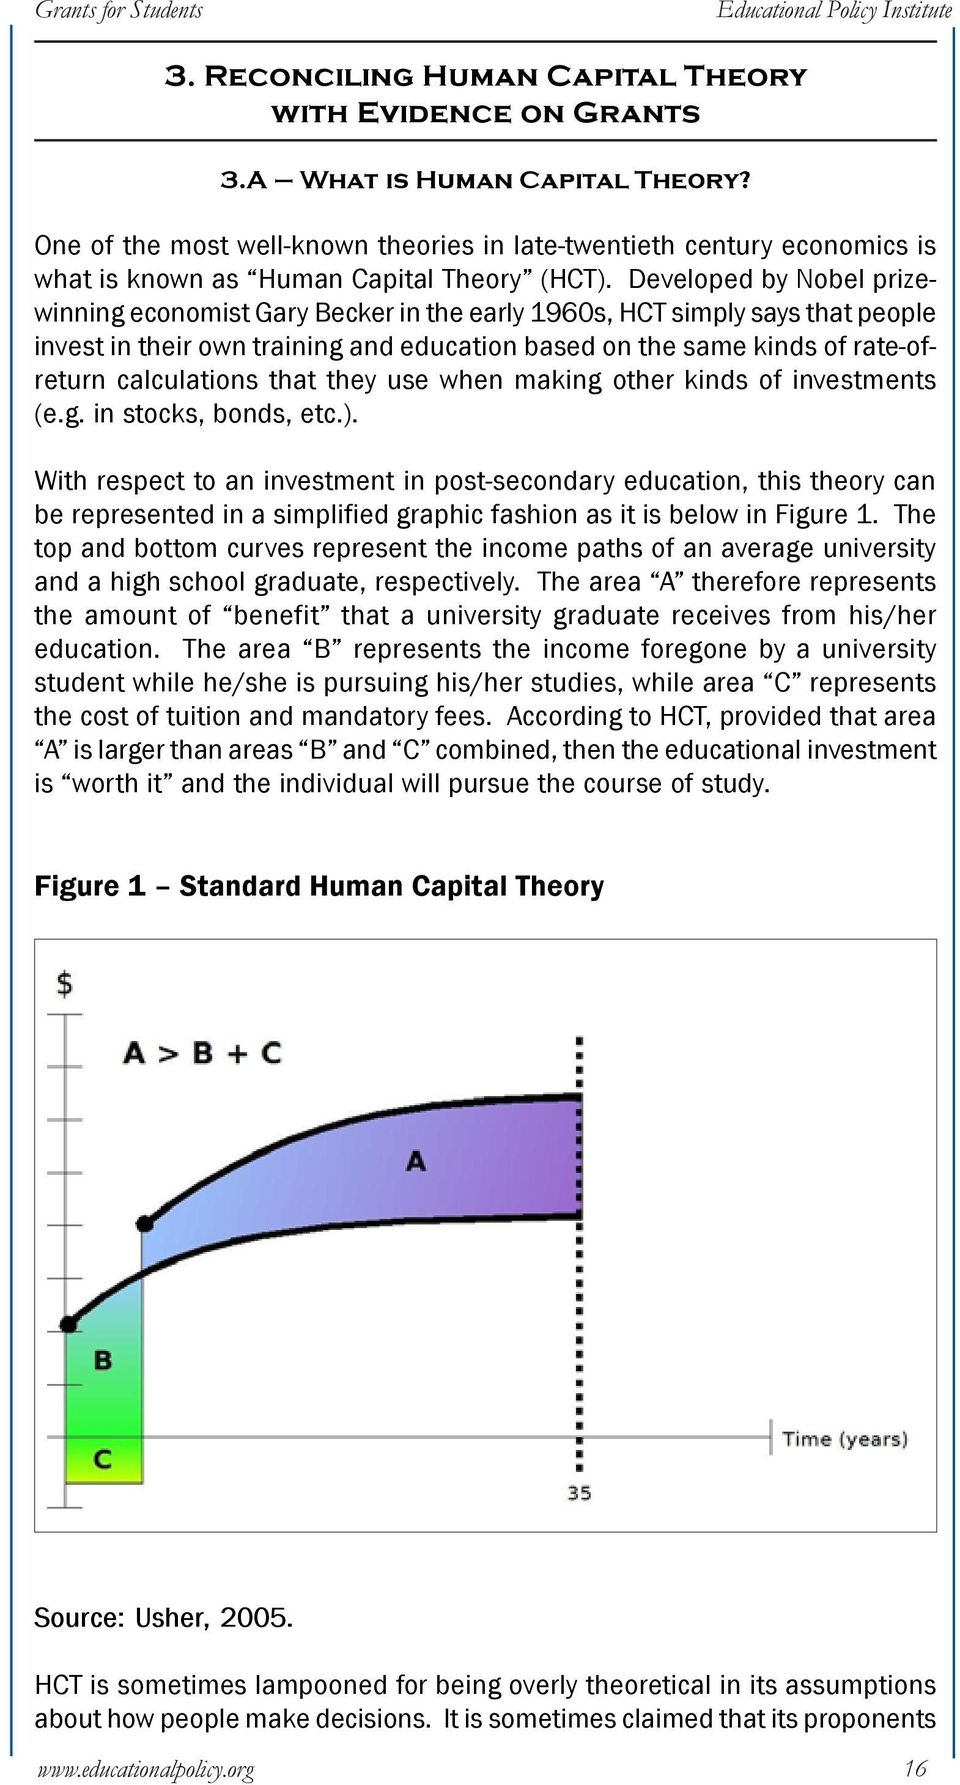 Developed by Nobel prizewinning economist Gary Becker in the early 1960s, HCT simply says that people invest in their own training and education based on the same kinds of rate-ofreturn calculations